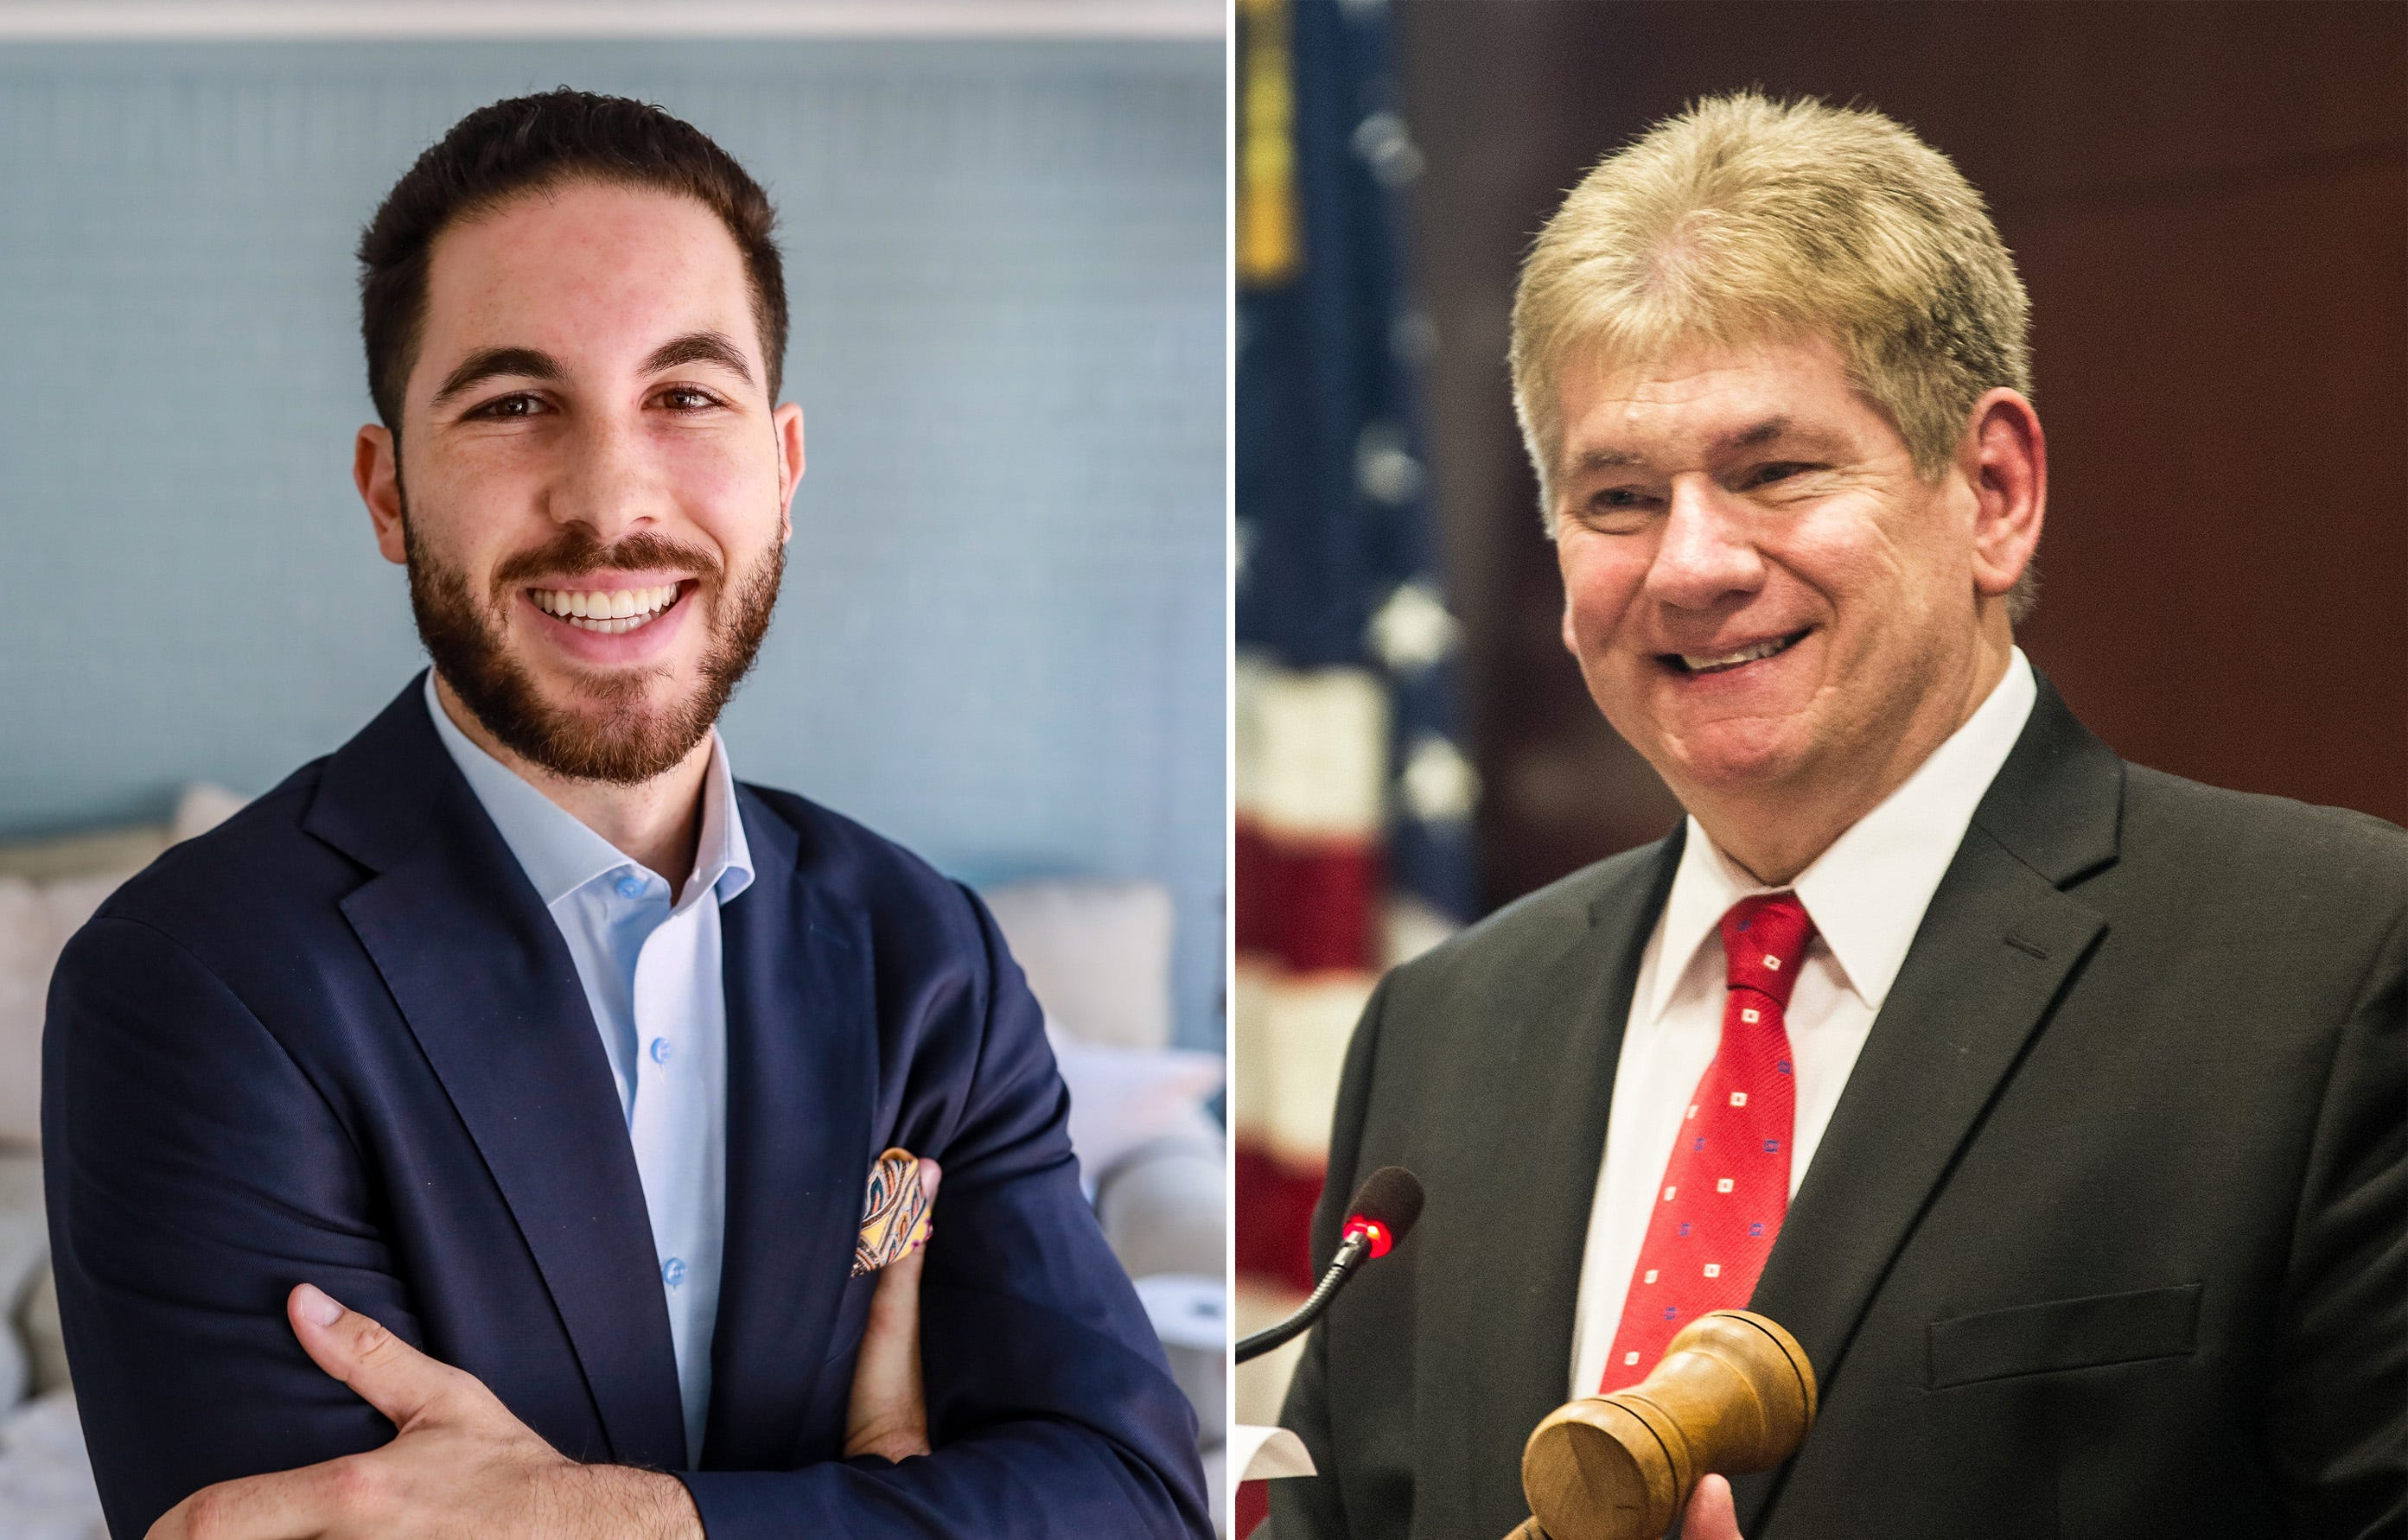 Dearborn mayor's race heats up as attacks launched